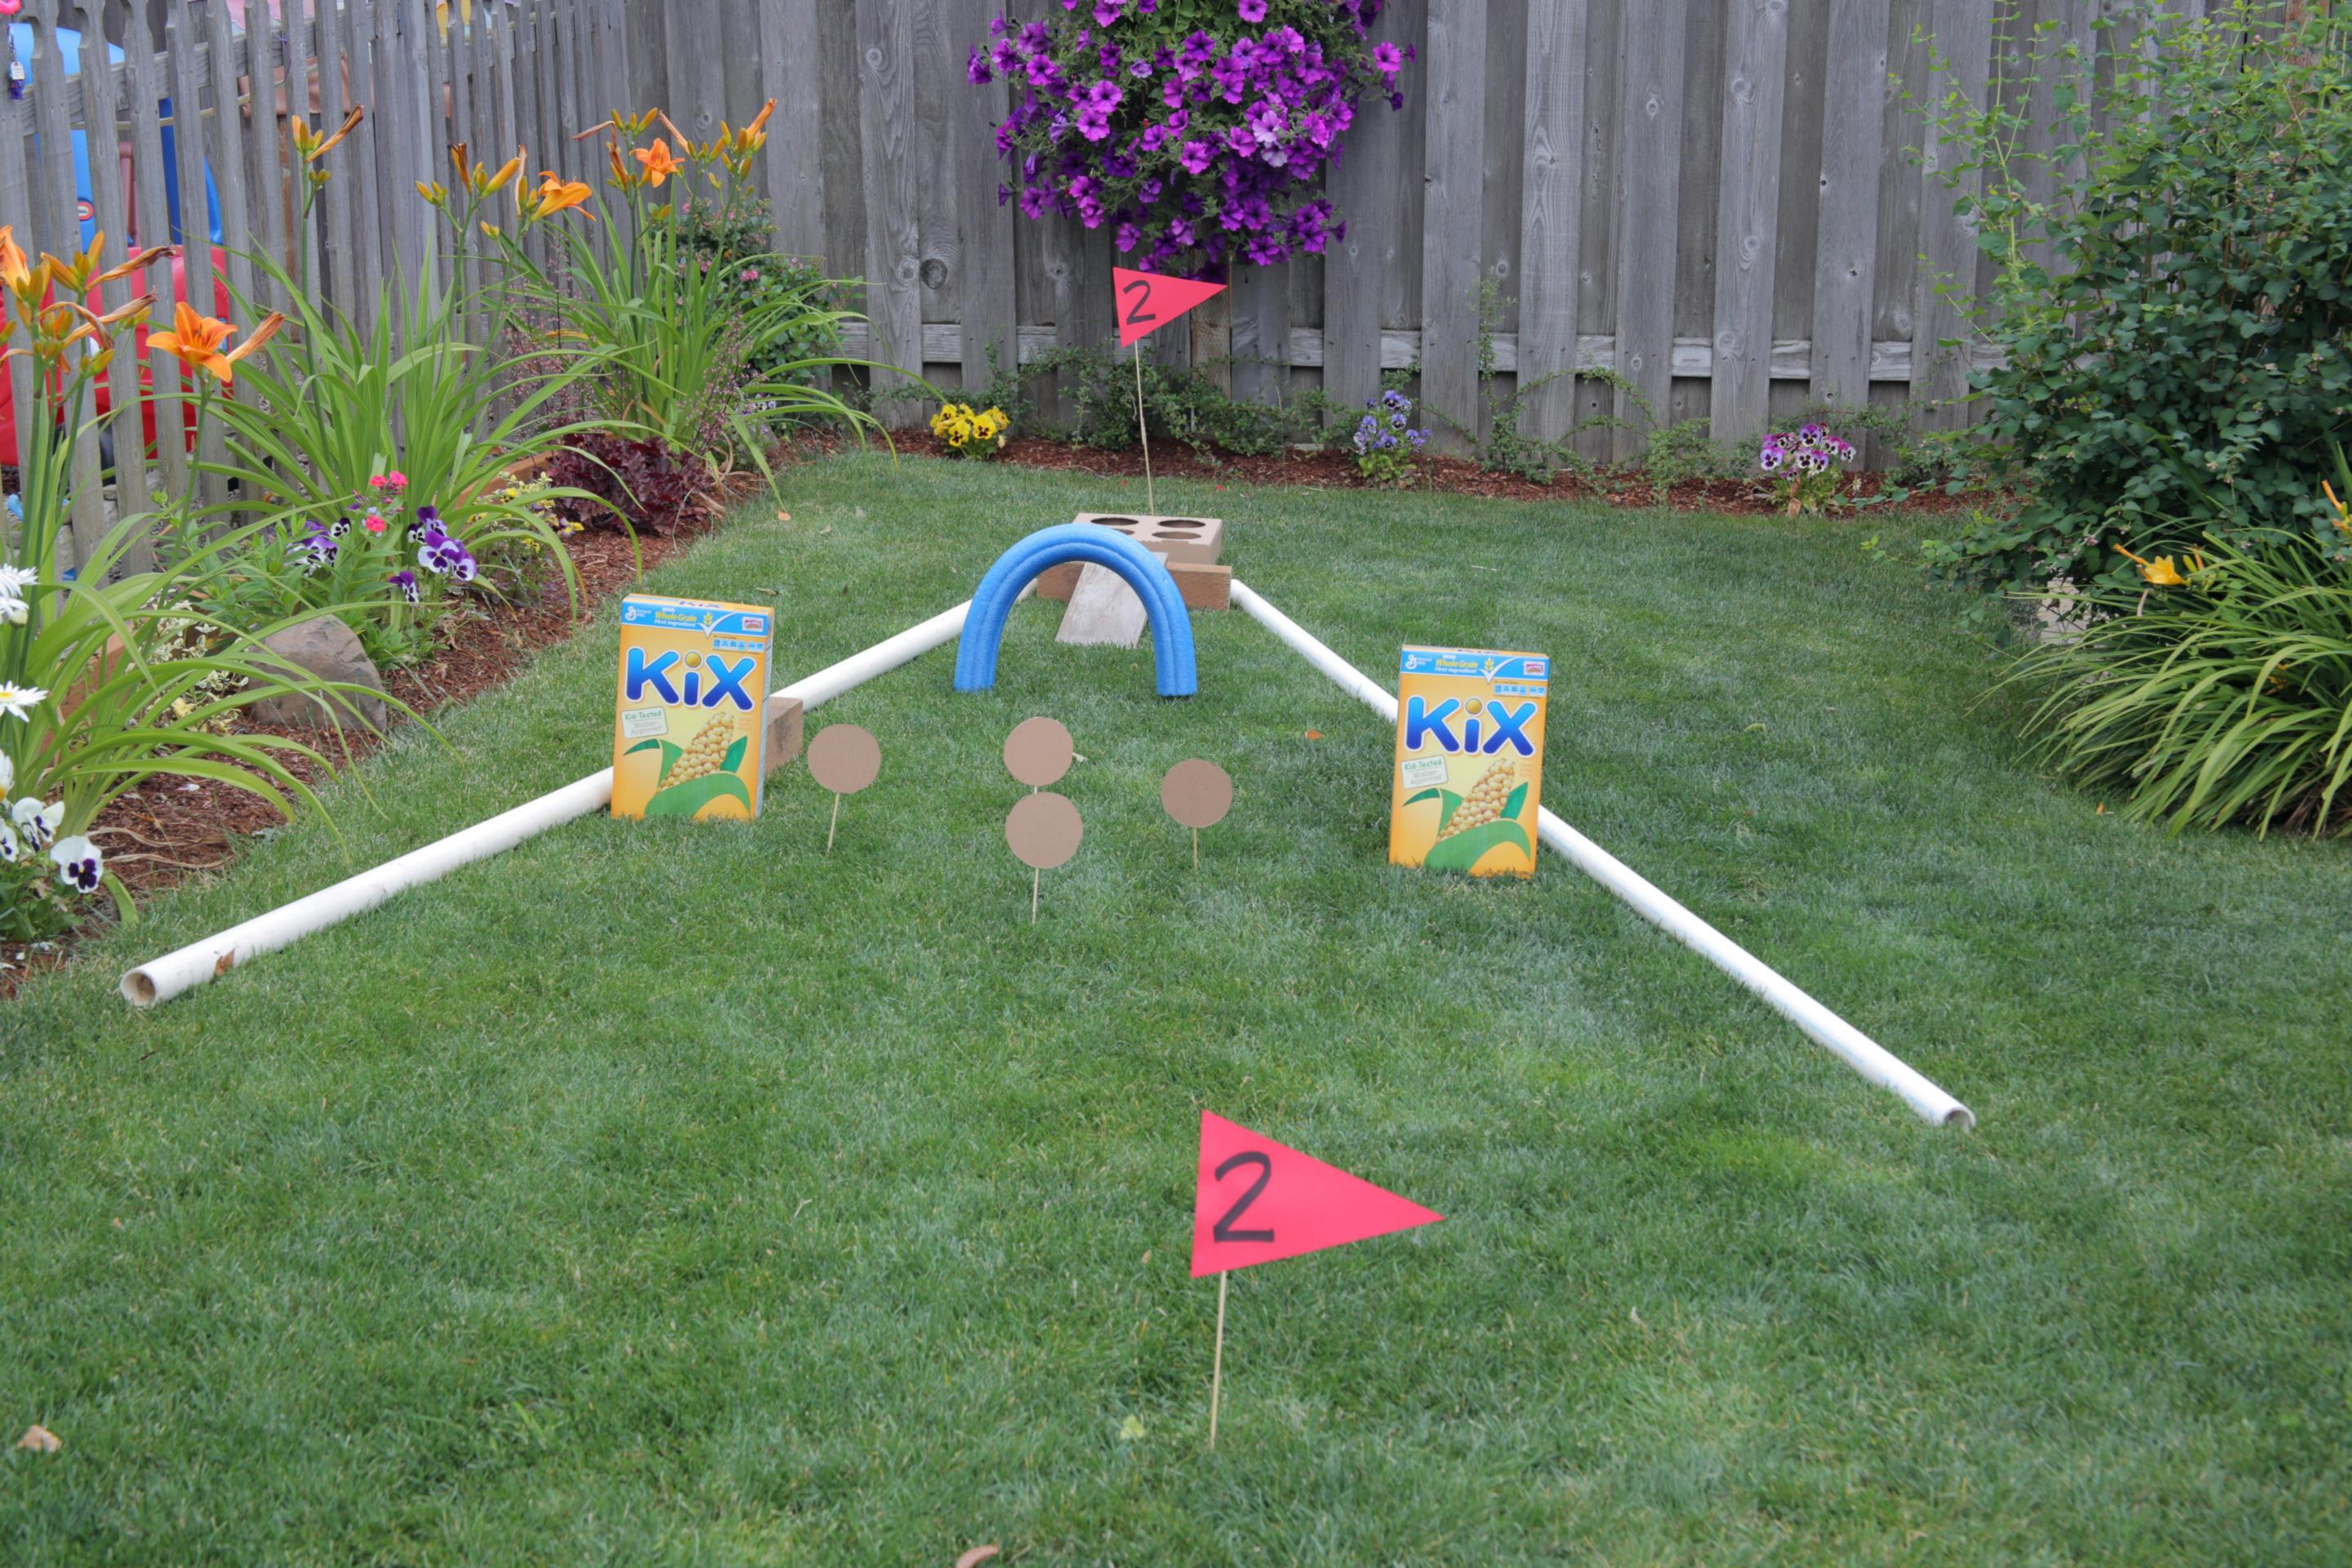 Design Your Own Home Extension Outdoor Fun Backyard Mini Golf Course 183 Kix Cereal